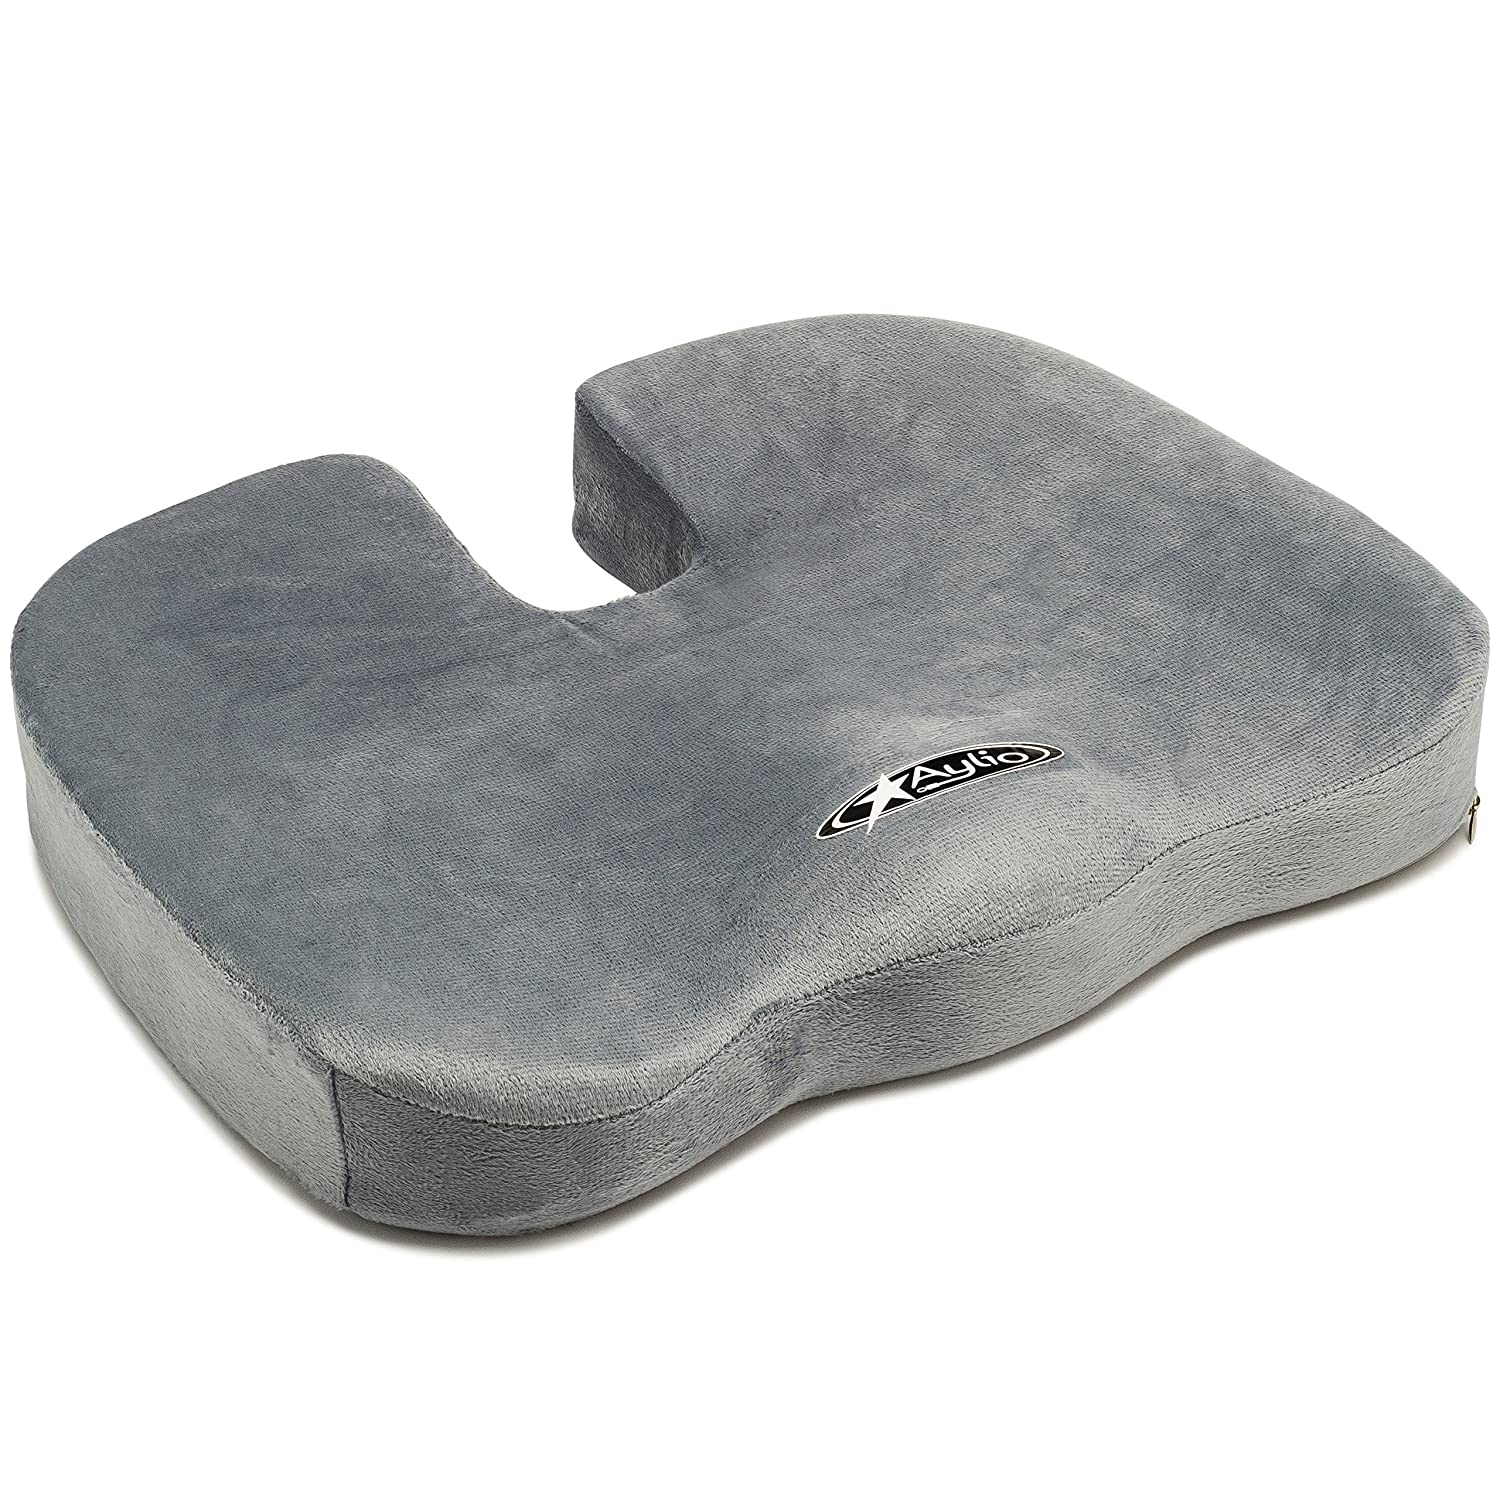 Aylio Coccyx Seat Cushion For Back Pain Relief And